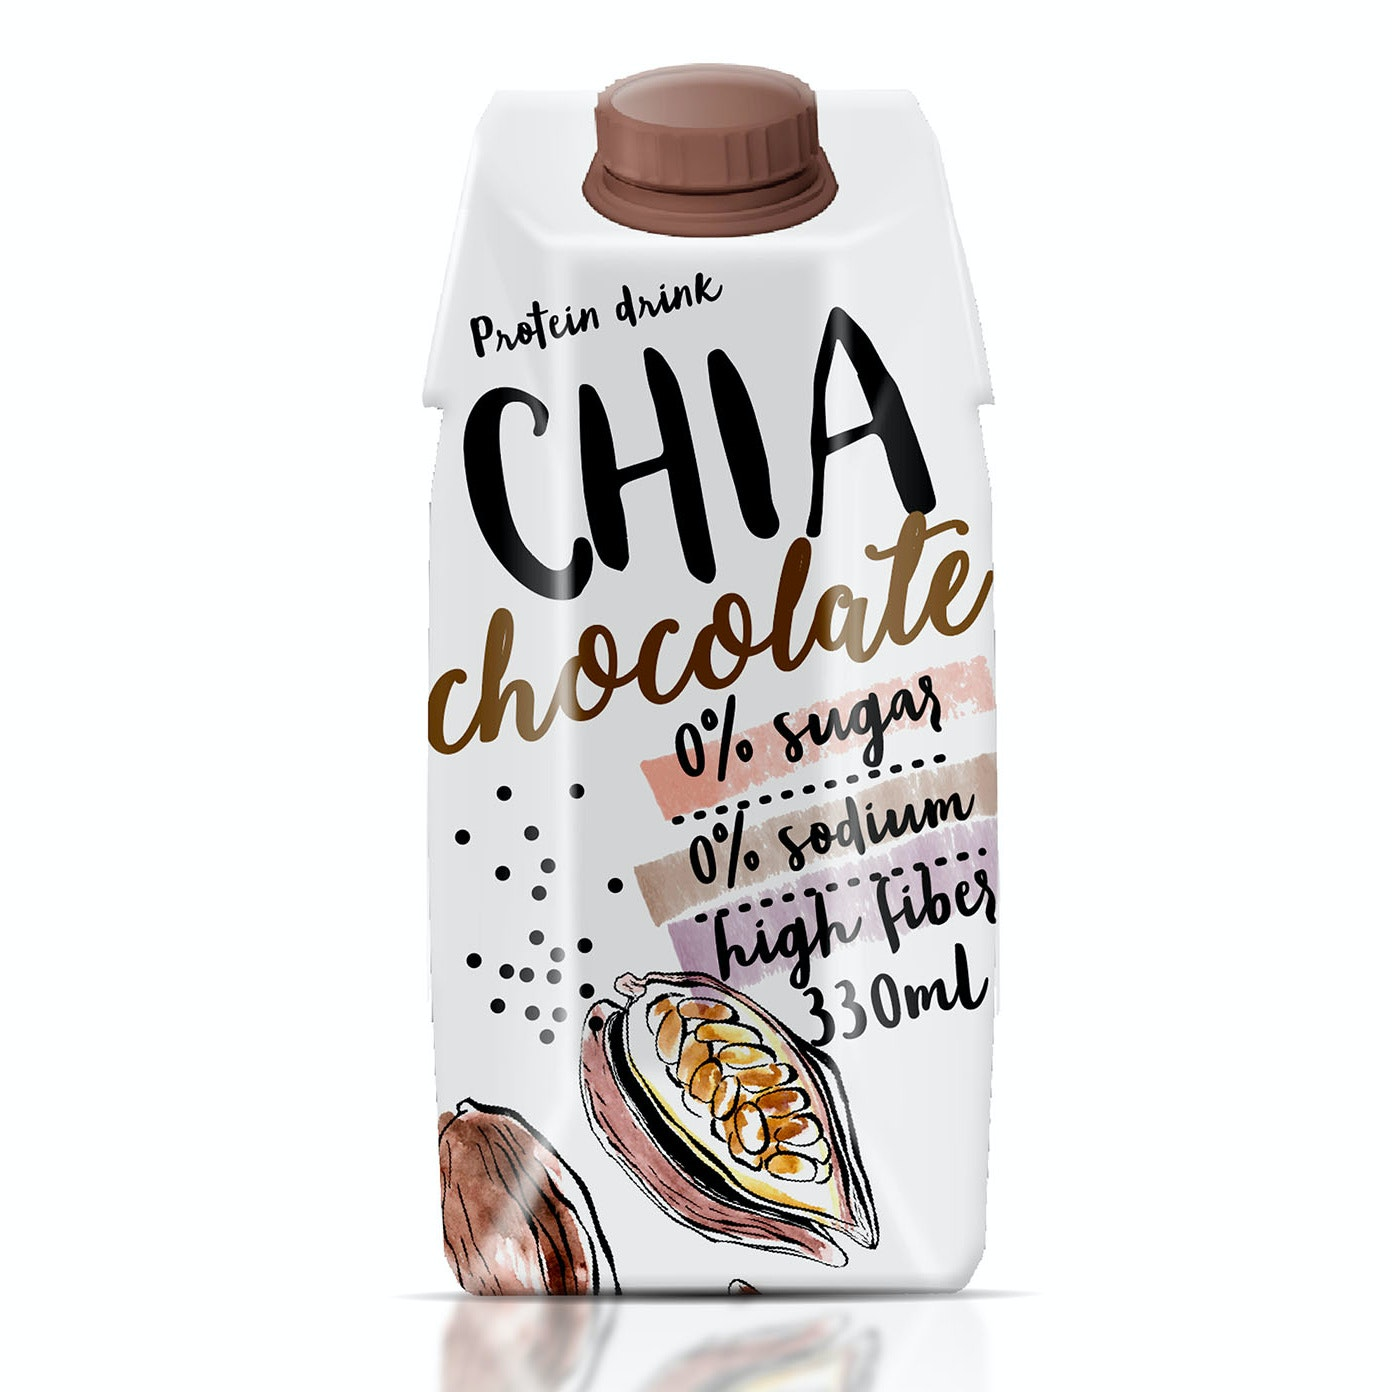 Chia chocolate packaging